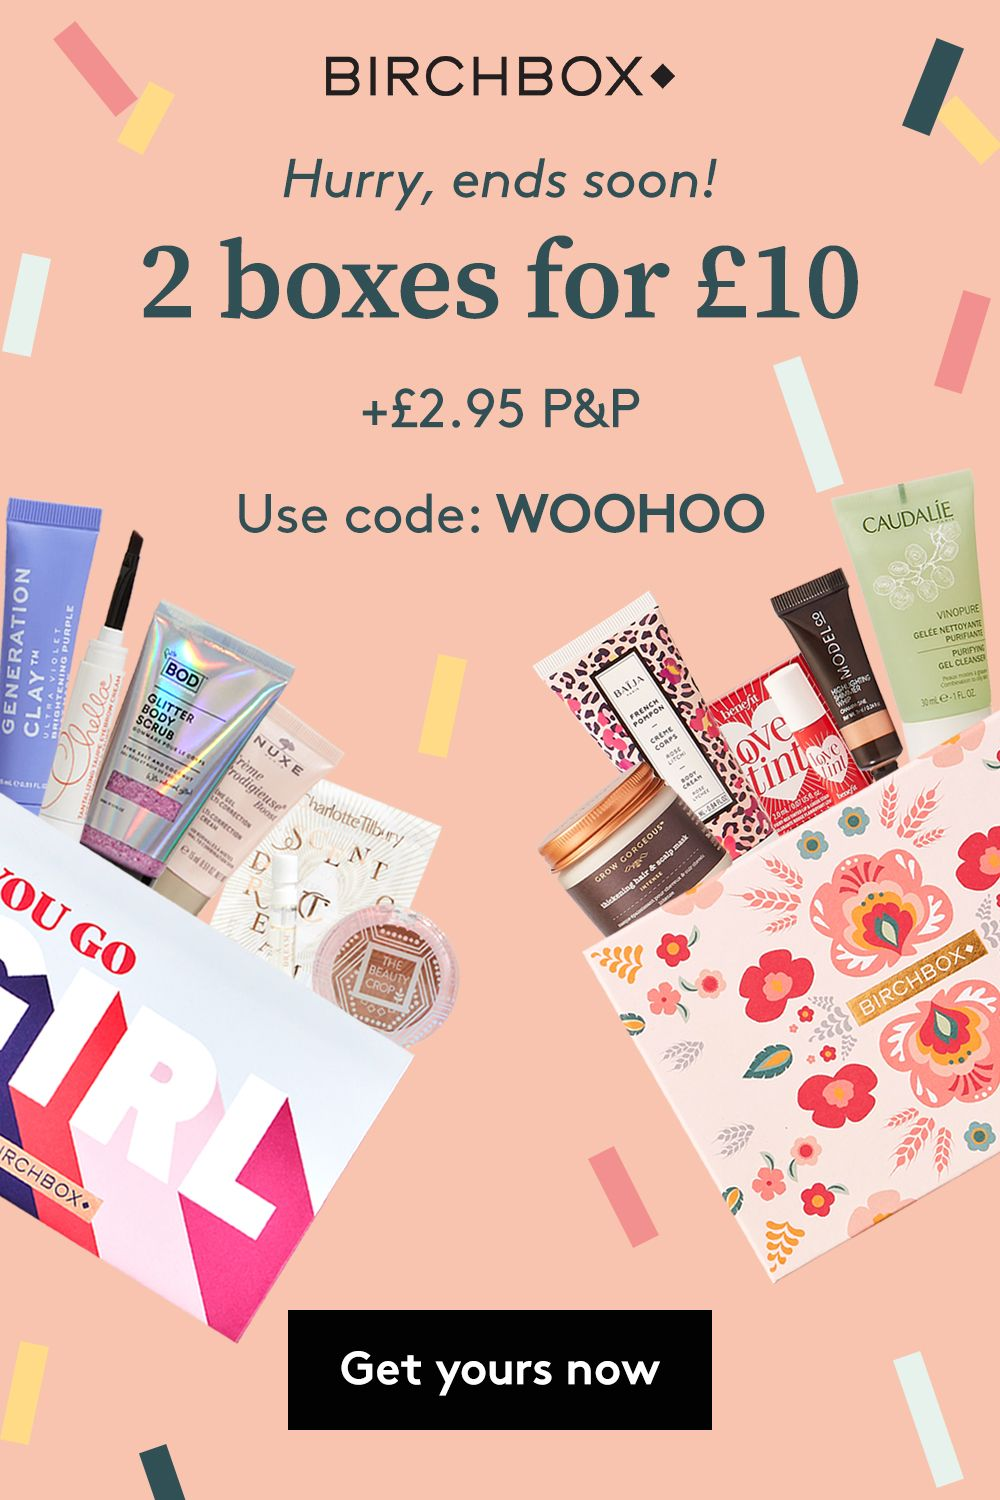 Get your first Birchbox this September and receive an